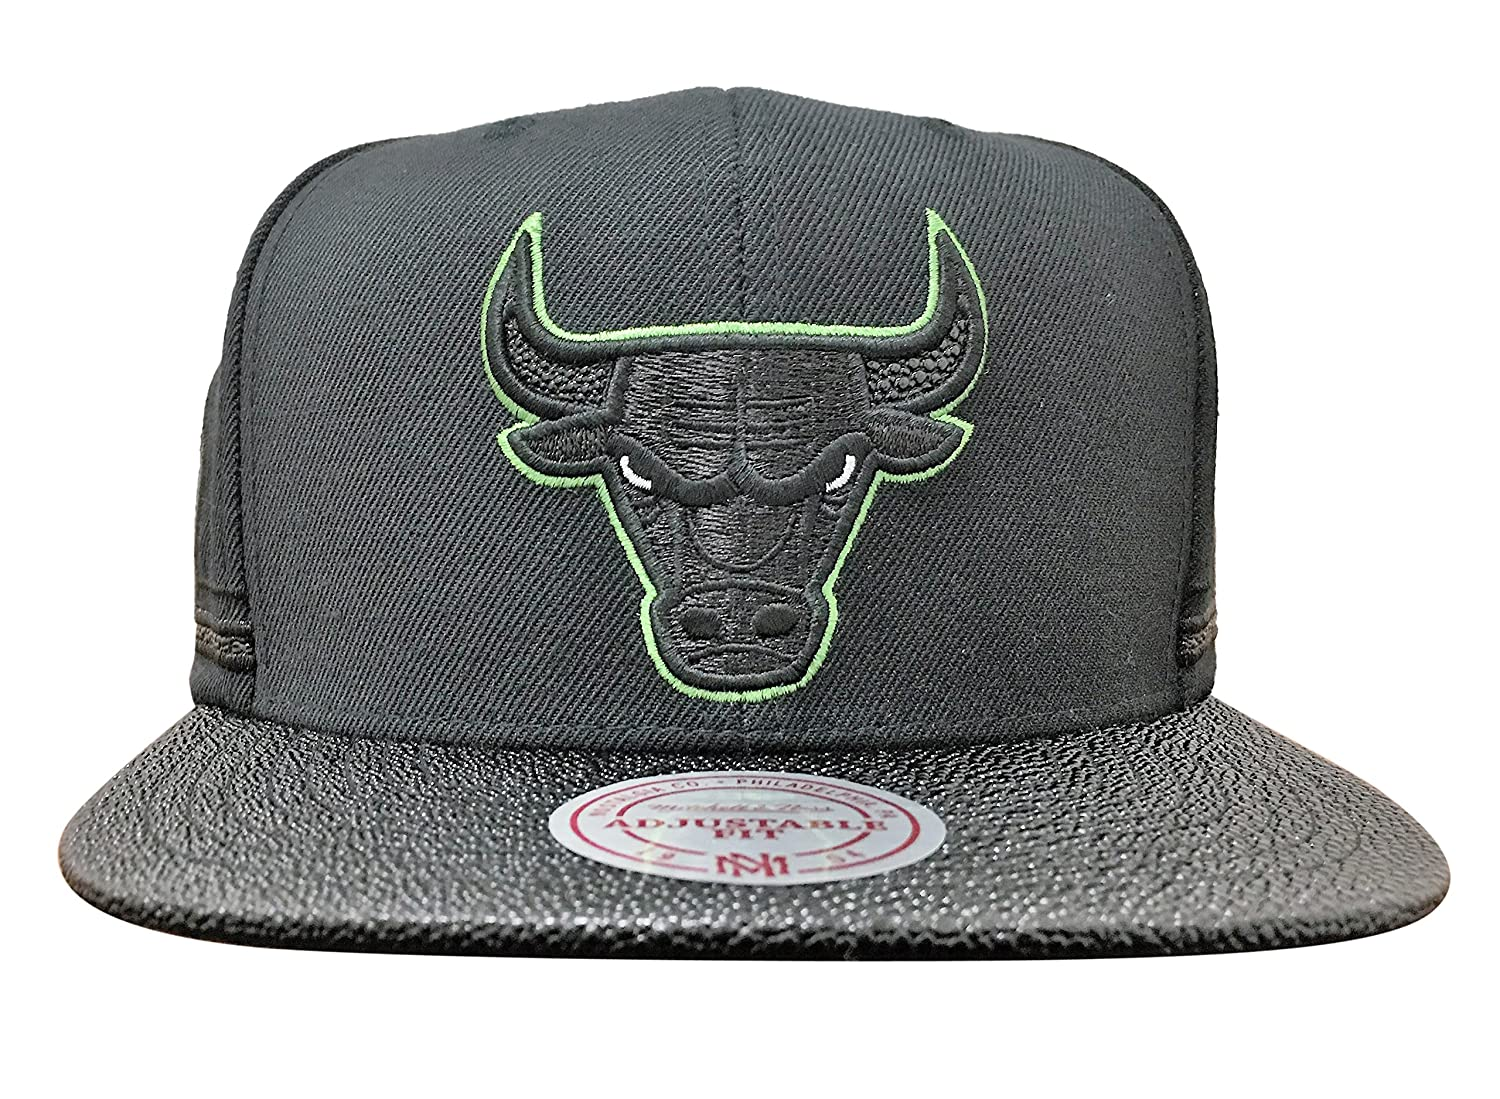 7763214ea4a Top1  Chicago Bulls Mitchell   Ness Altitude Jersey Snapback Hat. Wholesale  Price